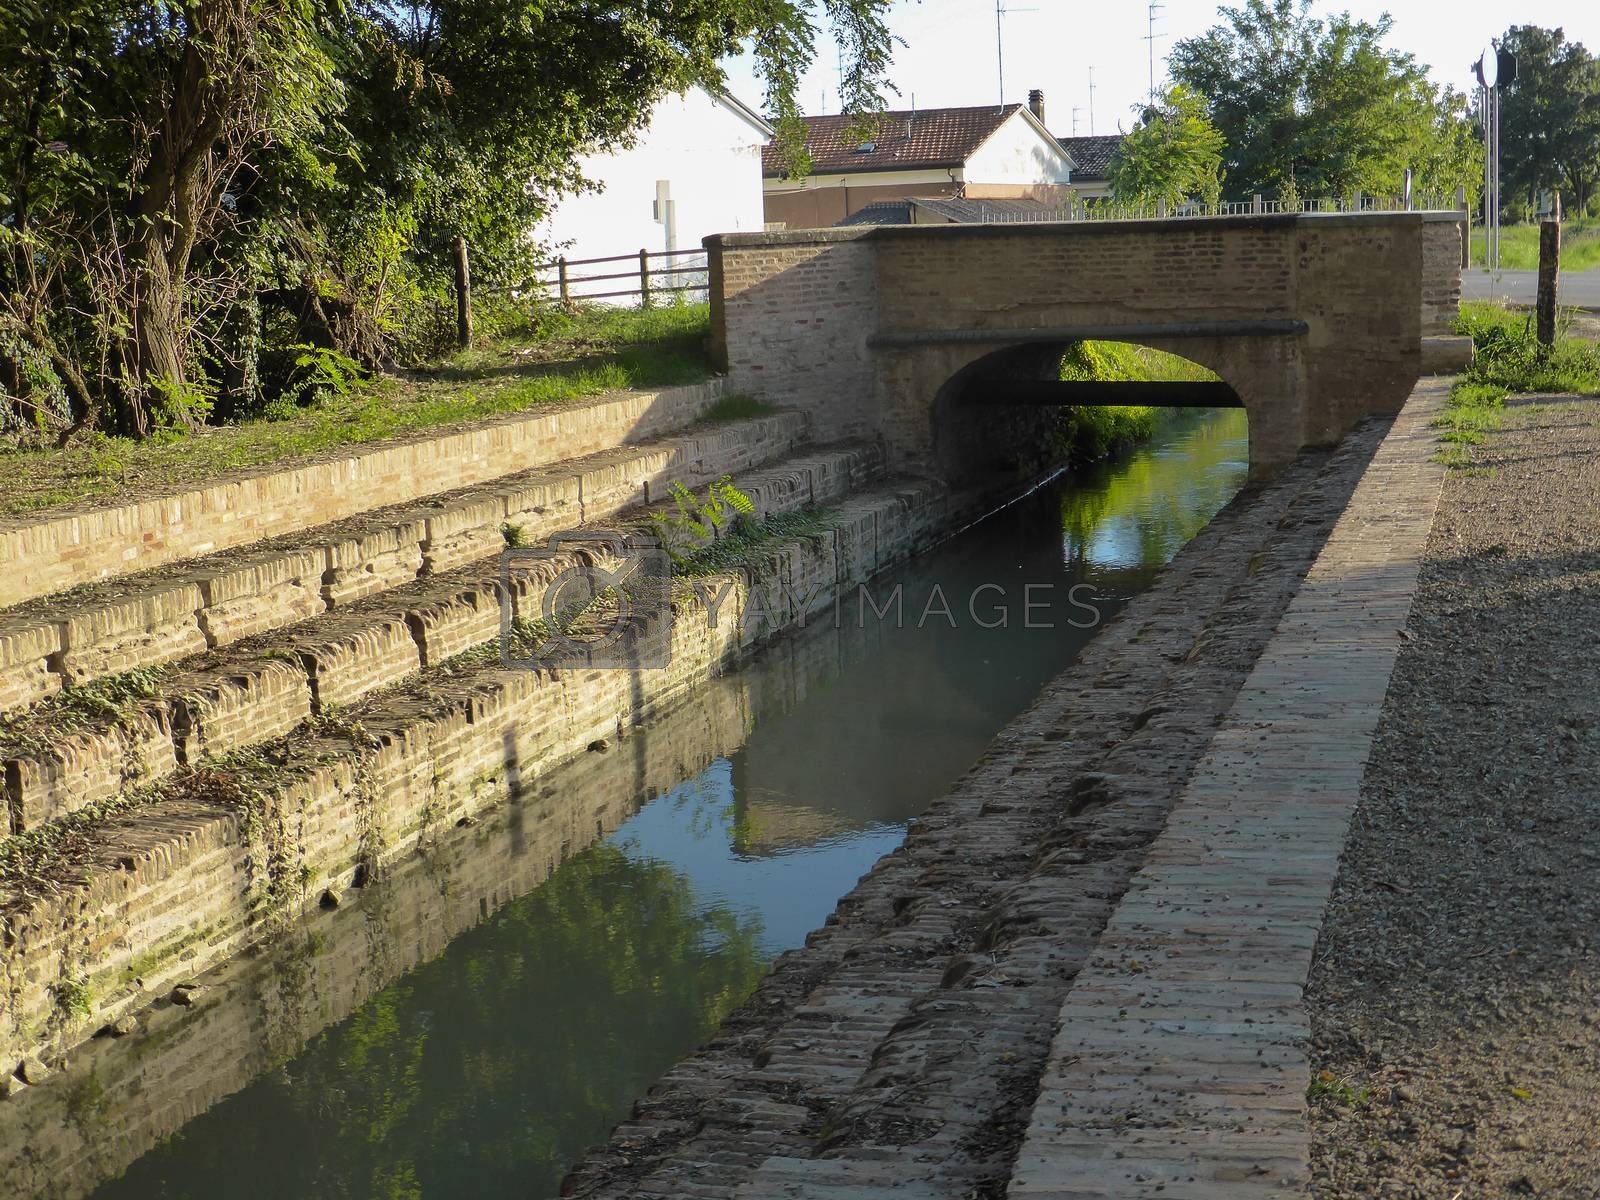 Royalty free image of Lugo,Italy - September 22: The Bridge of the Washerwomen in Lugo on September 22, 2013. by paocasa